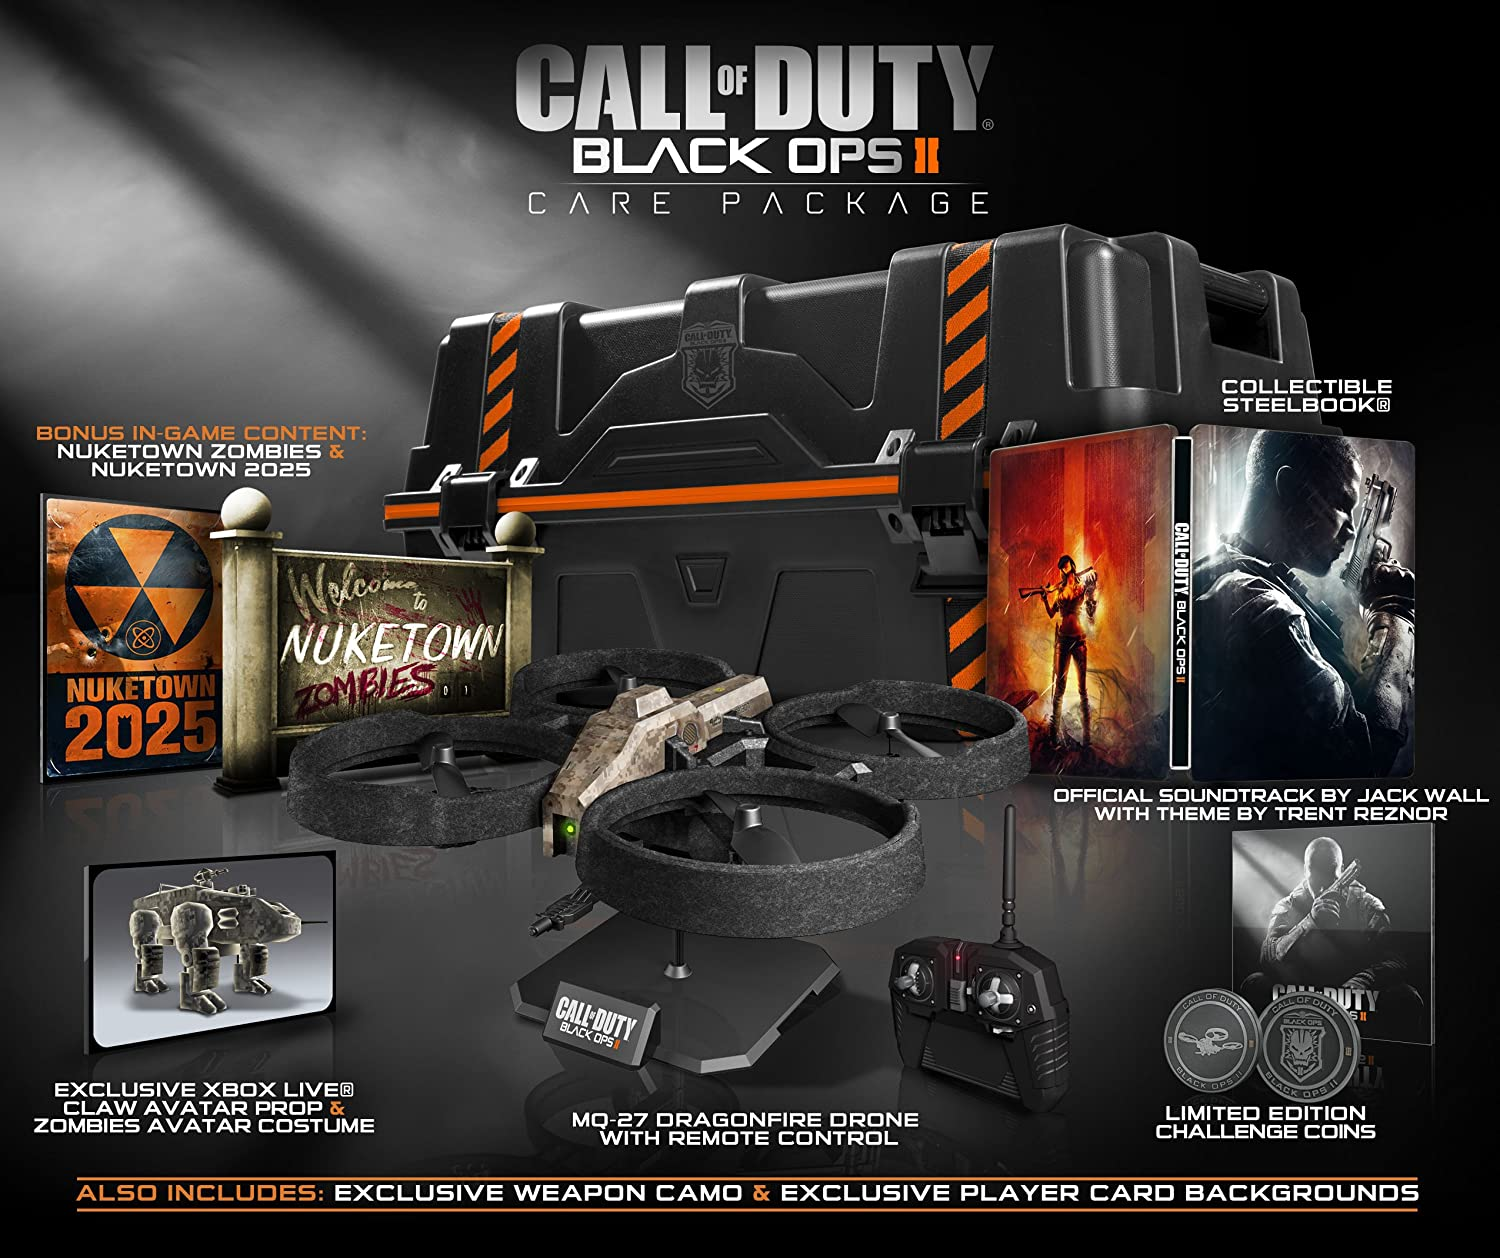 Amazon.com: Call of Duty: Black Ops II Care Package: Xbox 360: Video on black ops 1 maps list, black ops 2 zombies map list, gears of war map list, call of duty black ops 3 map list, battlefield bad company 2 map list, call of duty ghosts gun list, call of duty 4 map list, black ops 2 dlc maps list, modern warfare 2 map list,